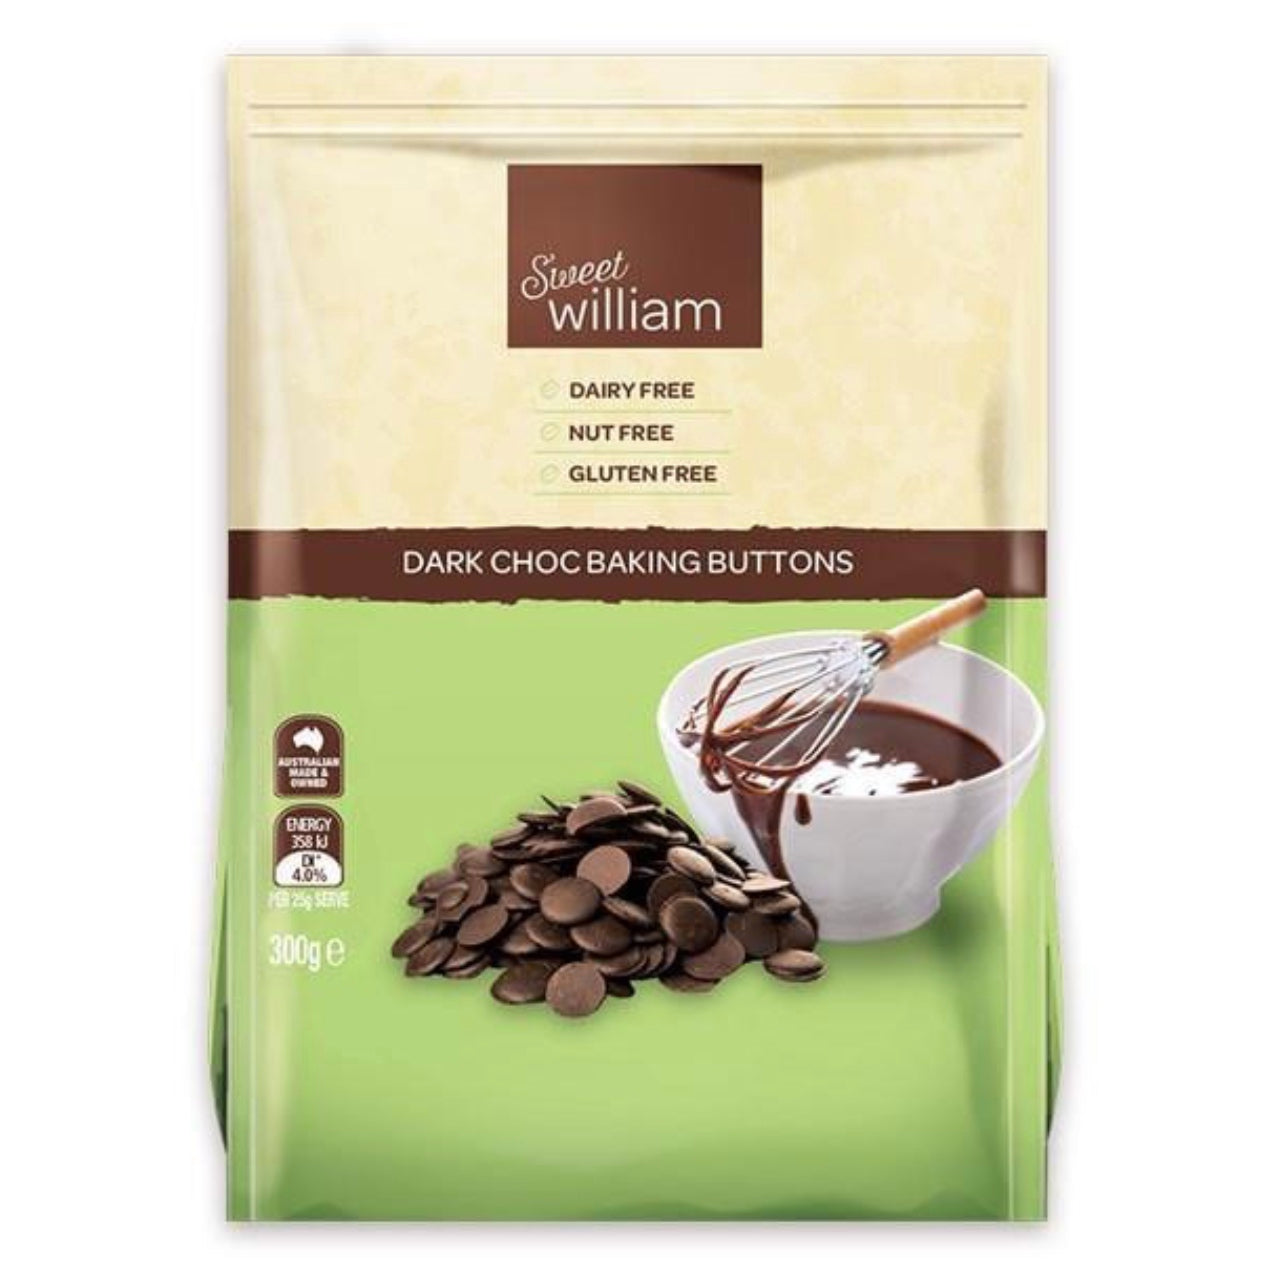 Sweet William Chocolate Baking Buttons